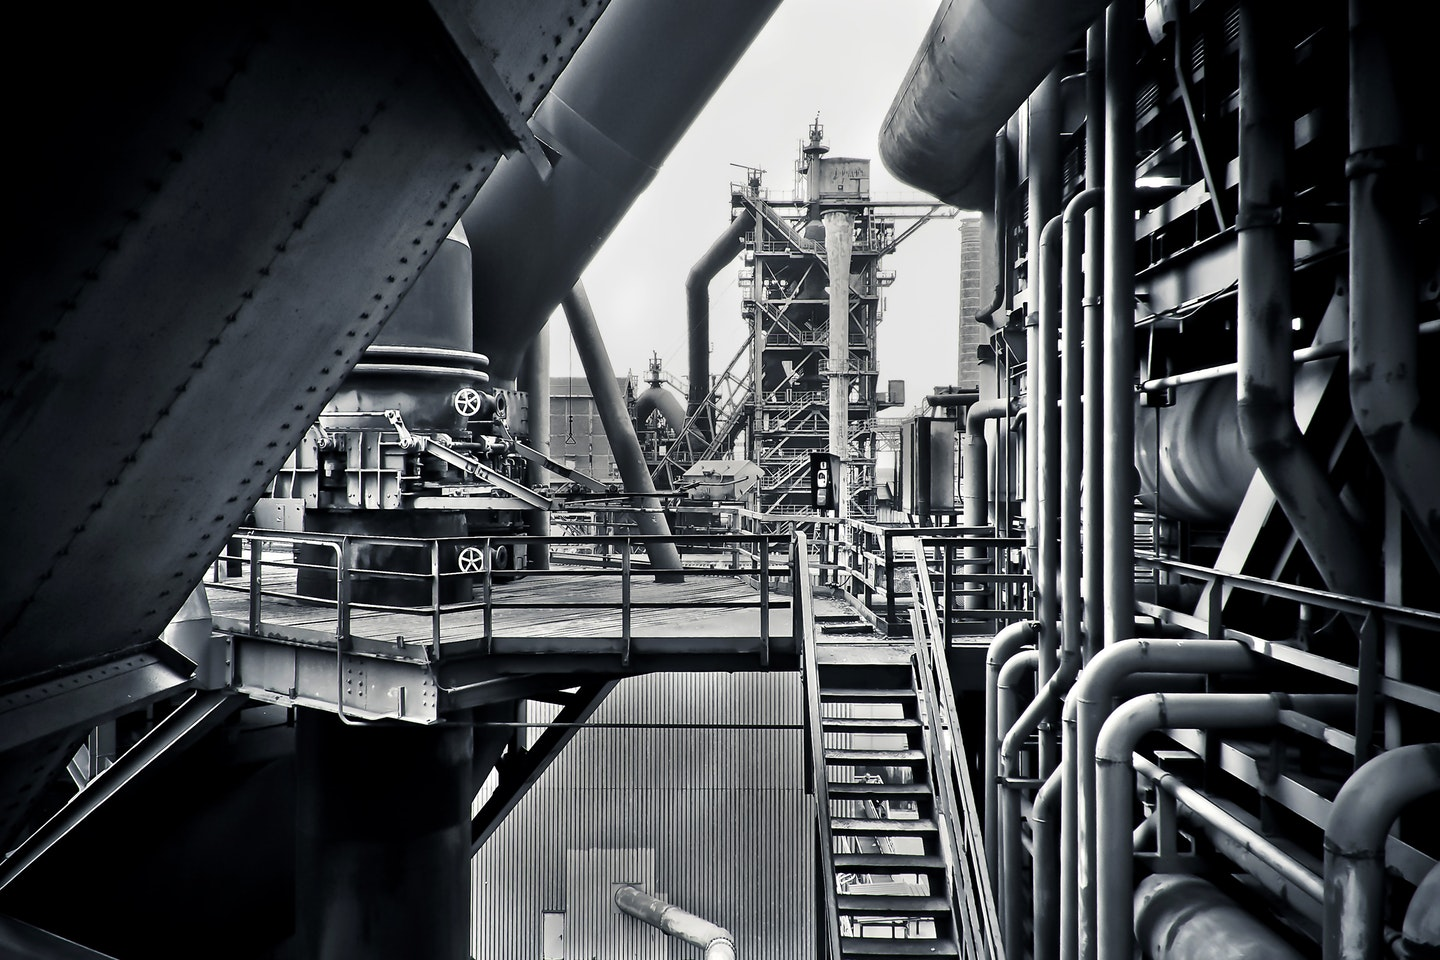 Photo of an industrial workplace